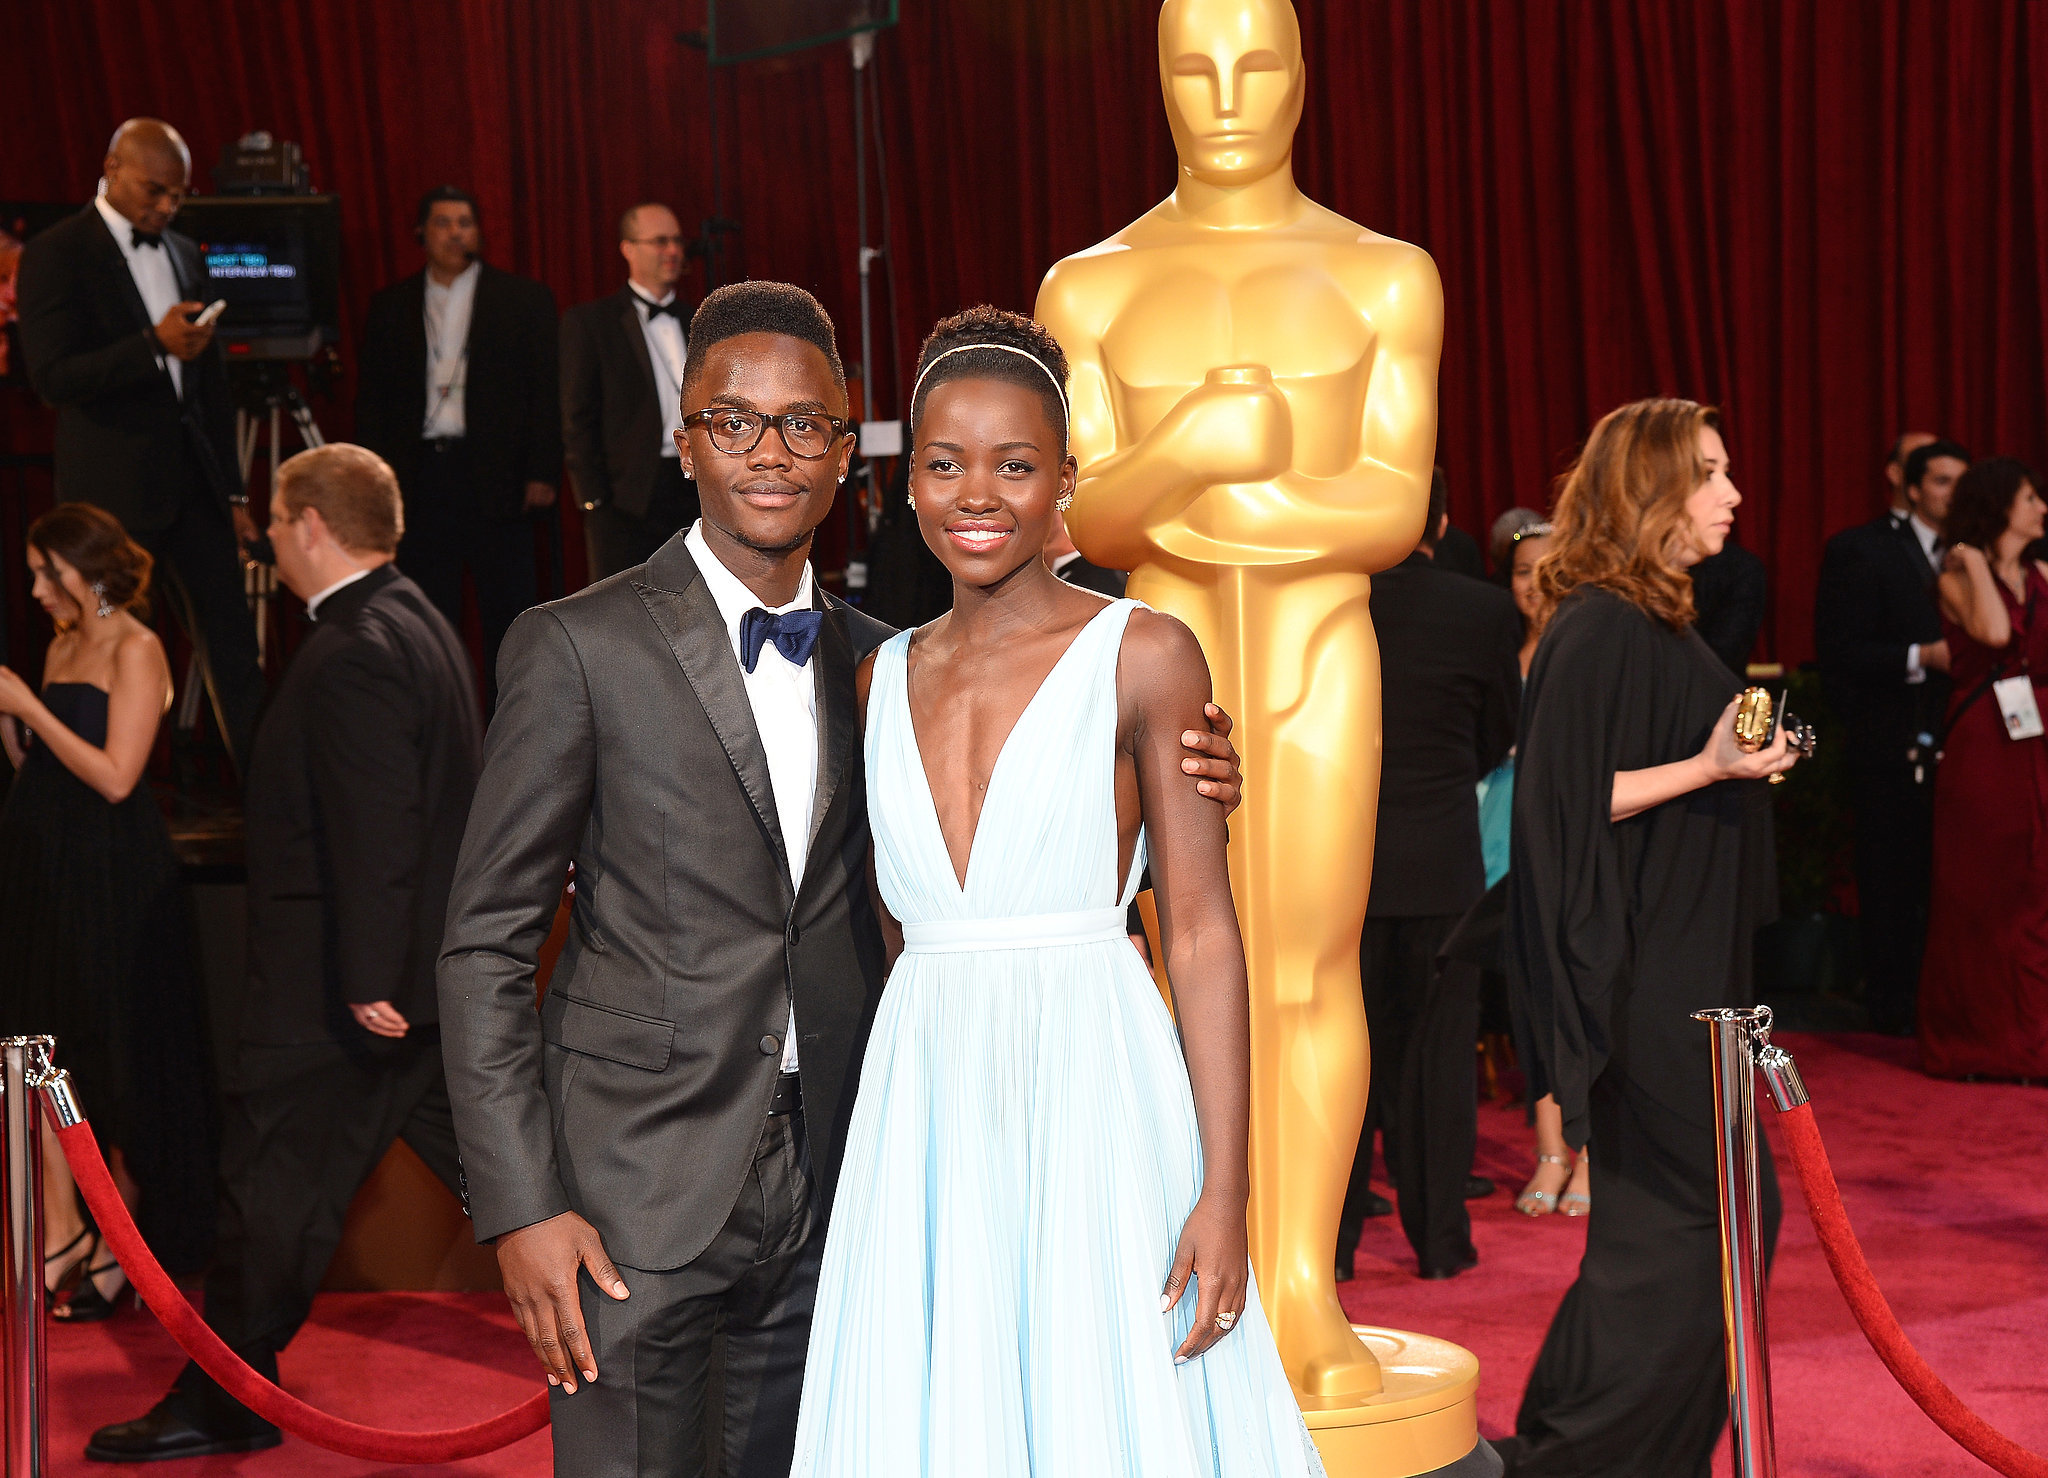 Best Featured Sibling in a Very Supportive Role: Peter Nyong'o